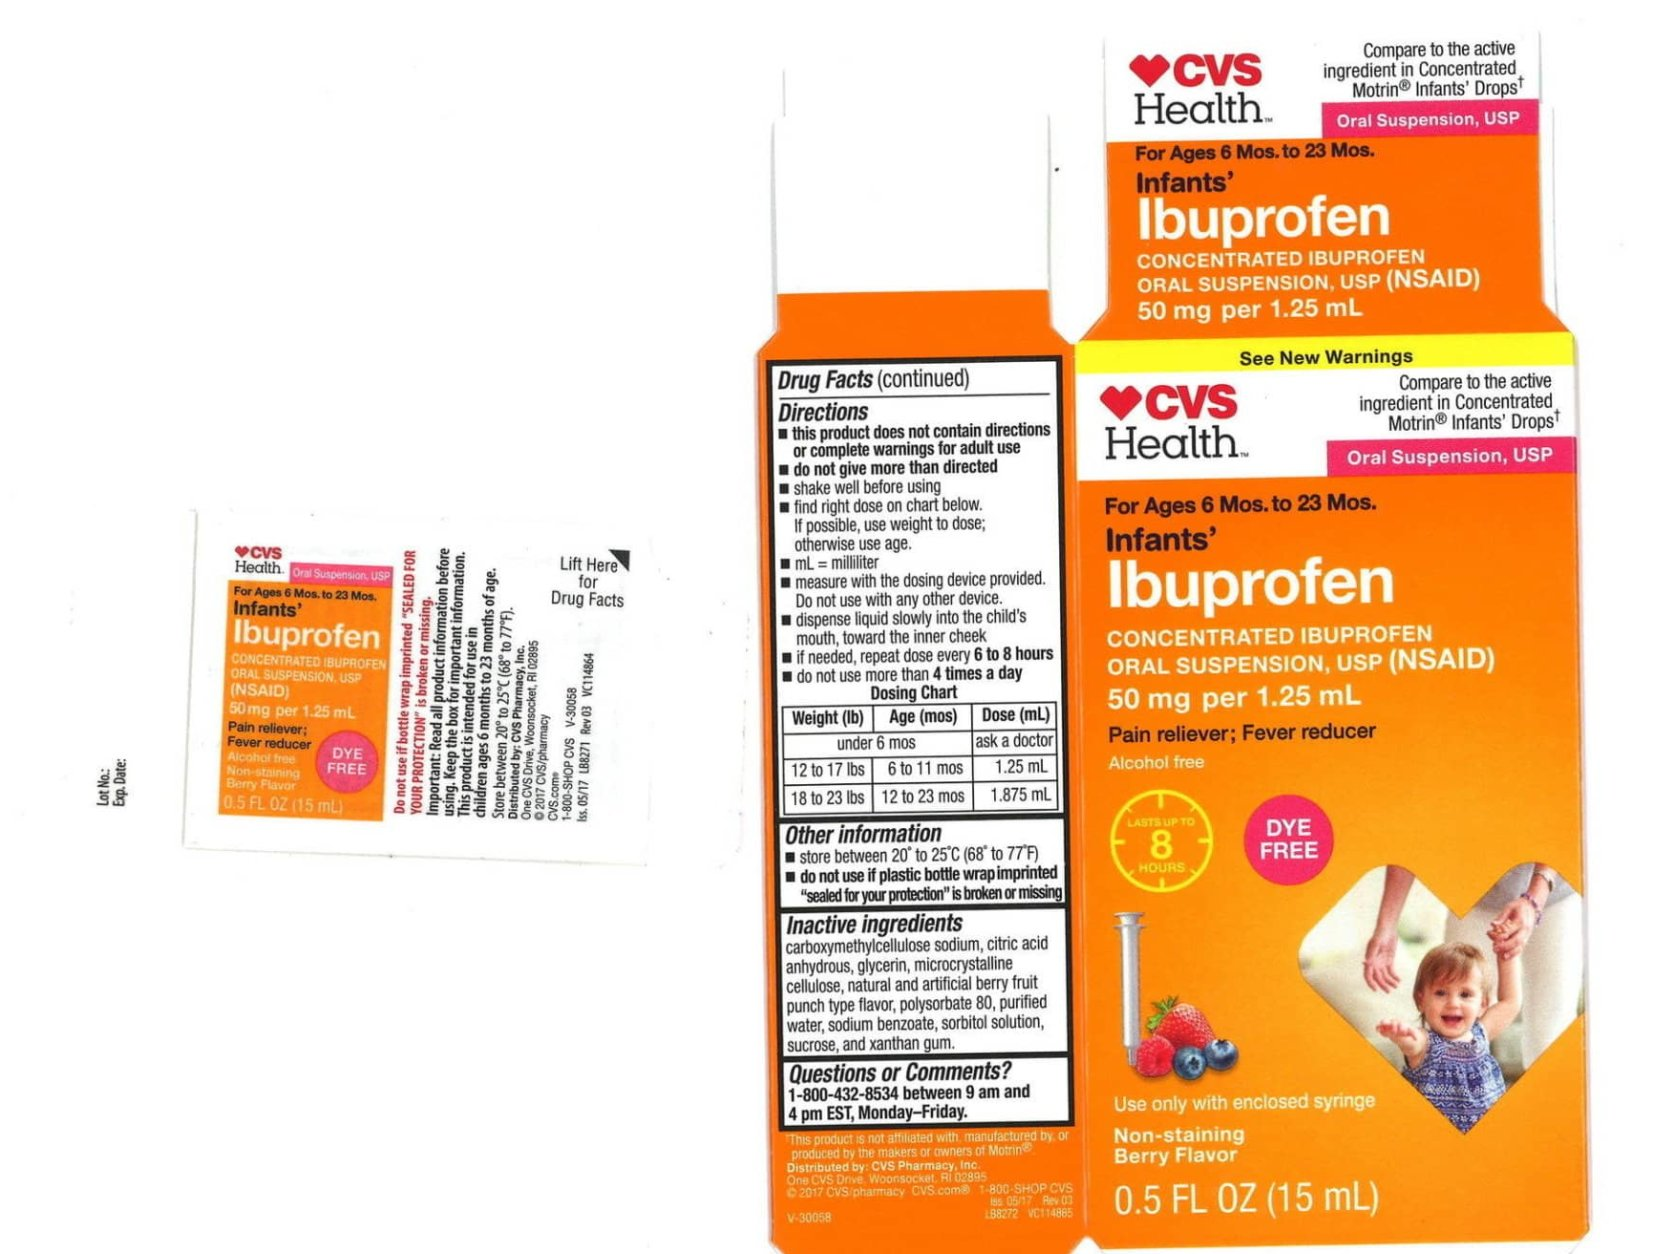 An example of the recalled liquid ibuprofen packaging found at CVS stores. (Tris Pharma, Inc./Hand-out)